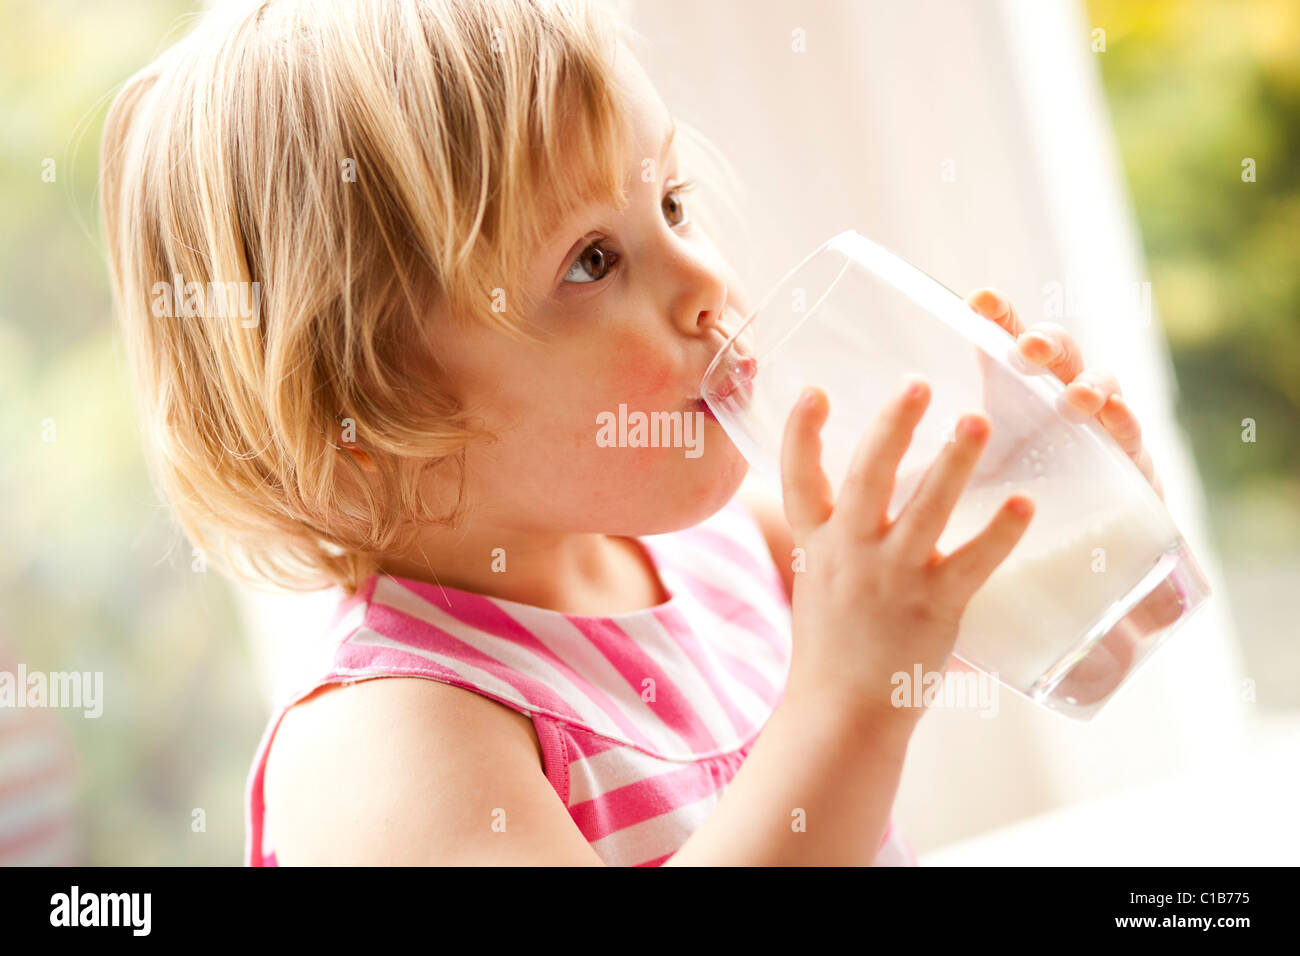 Child drinking glass of milk - Stock Image